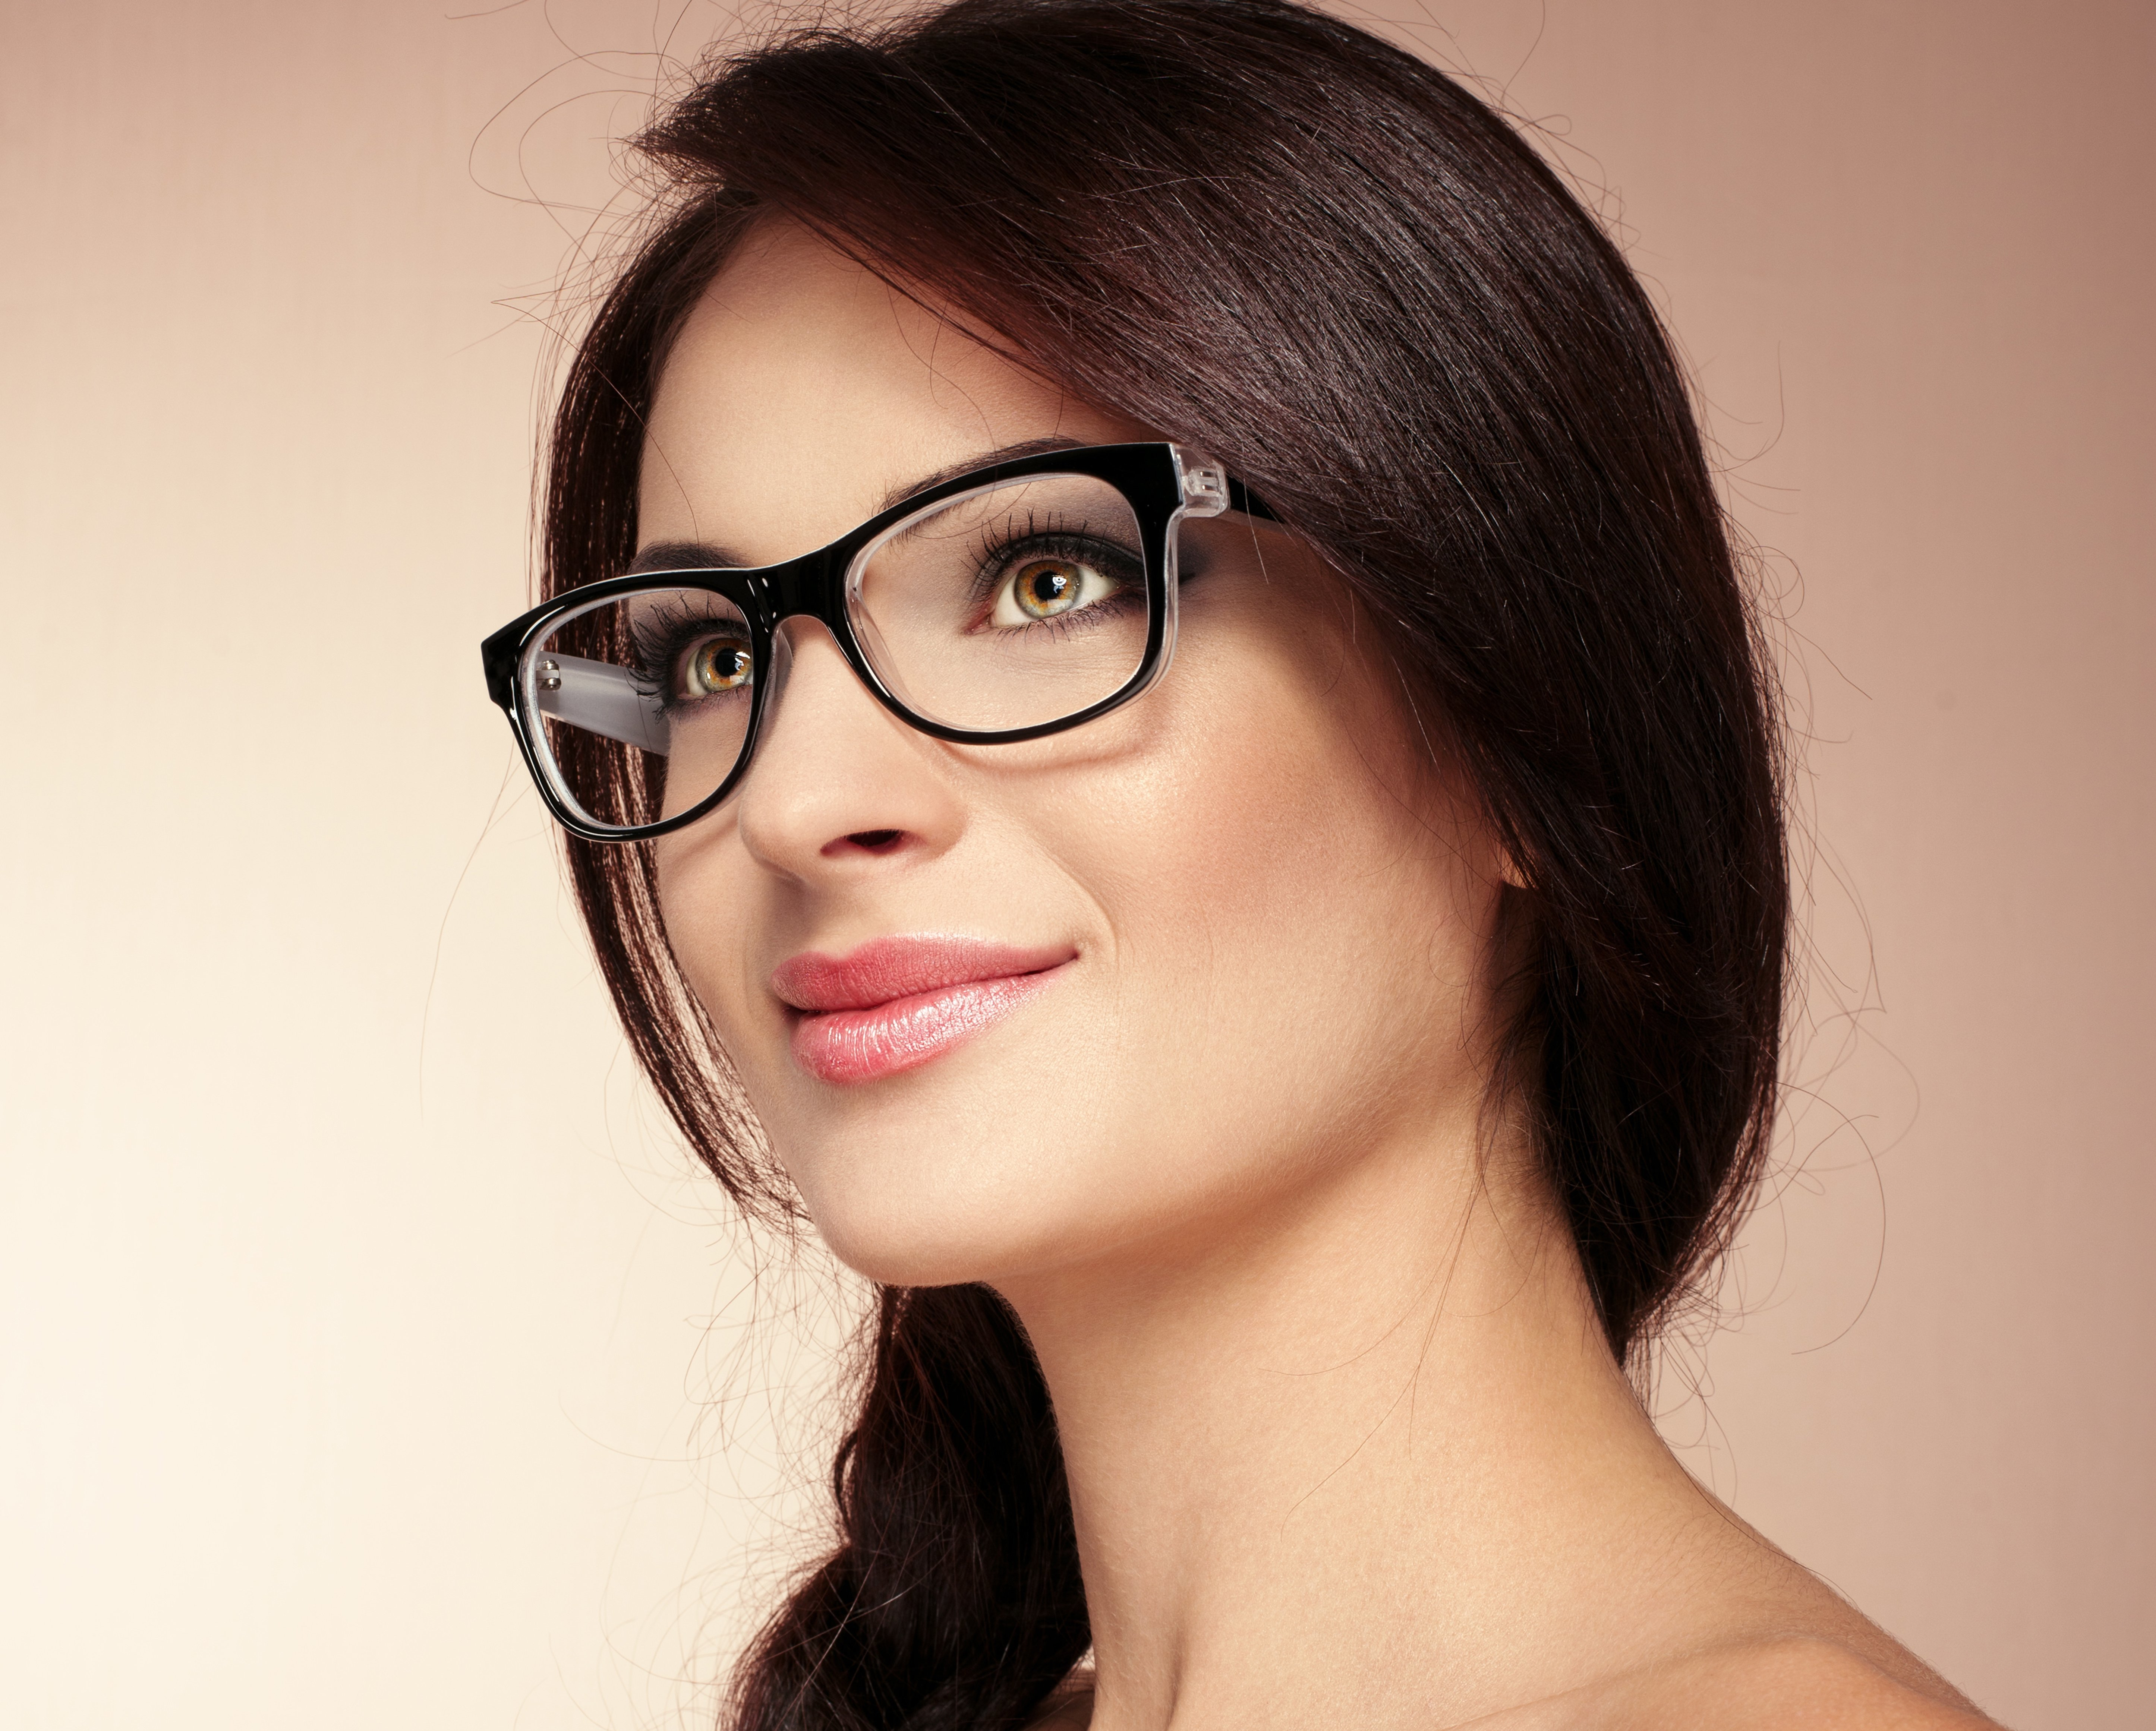 How to clean glasses properly, and what not to do